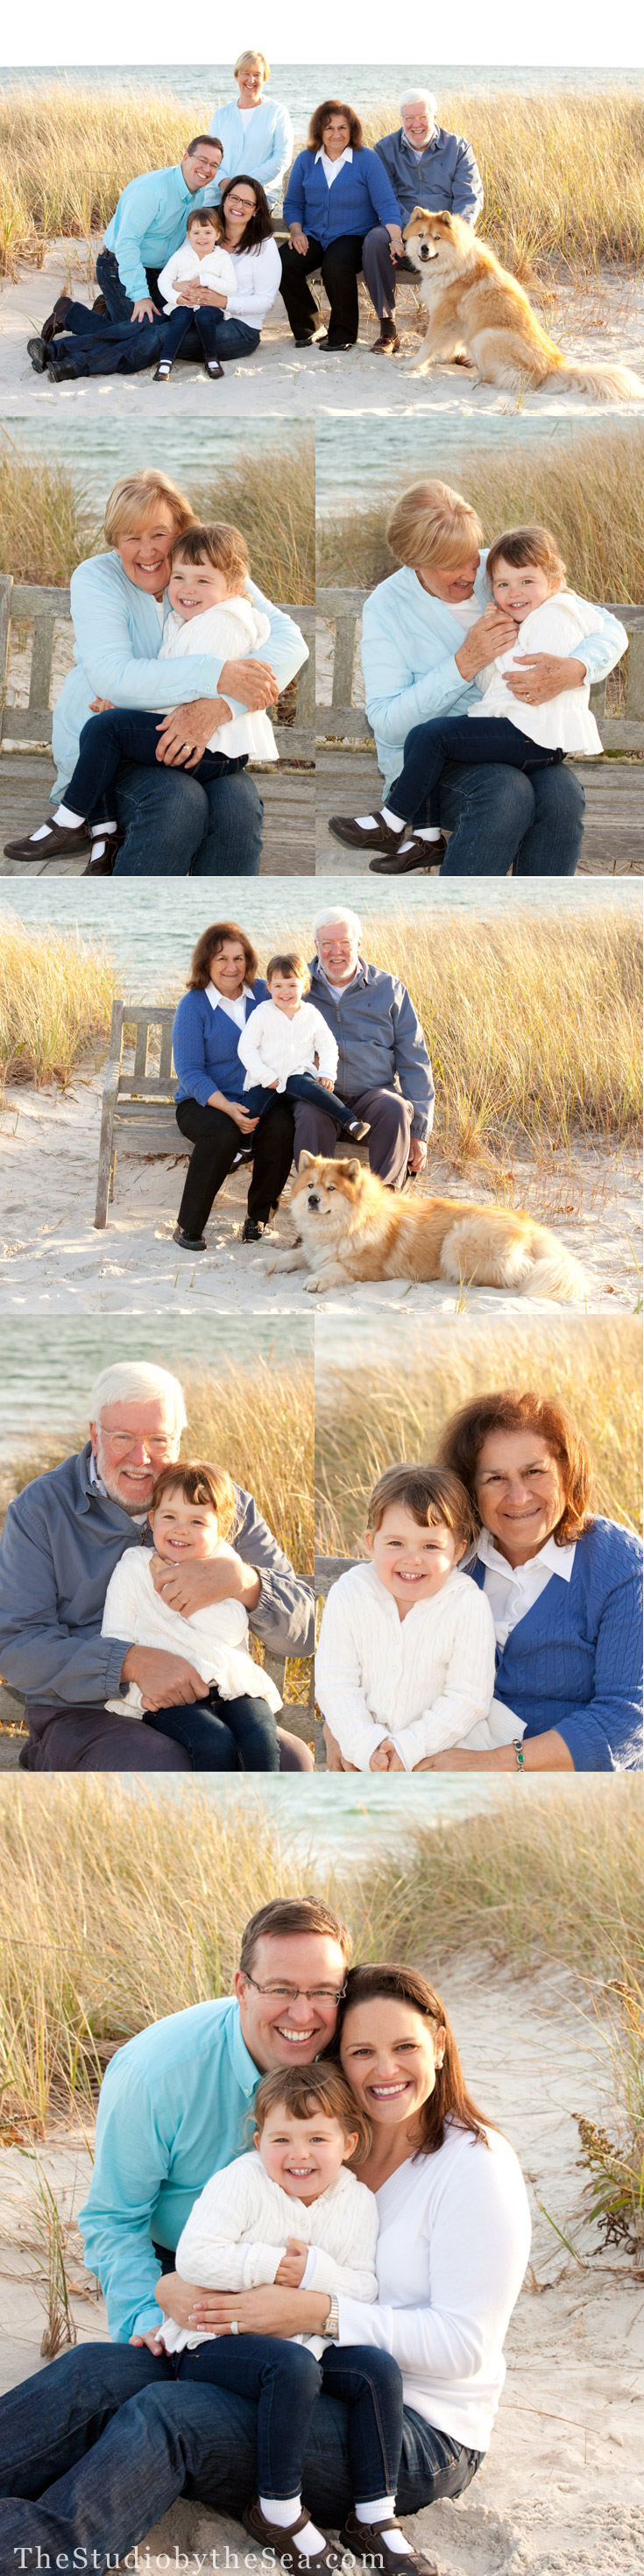 A group of generational portraits on Cape Cod